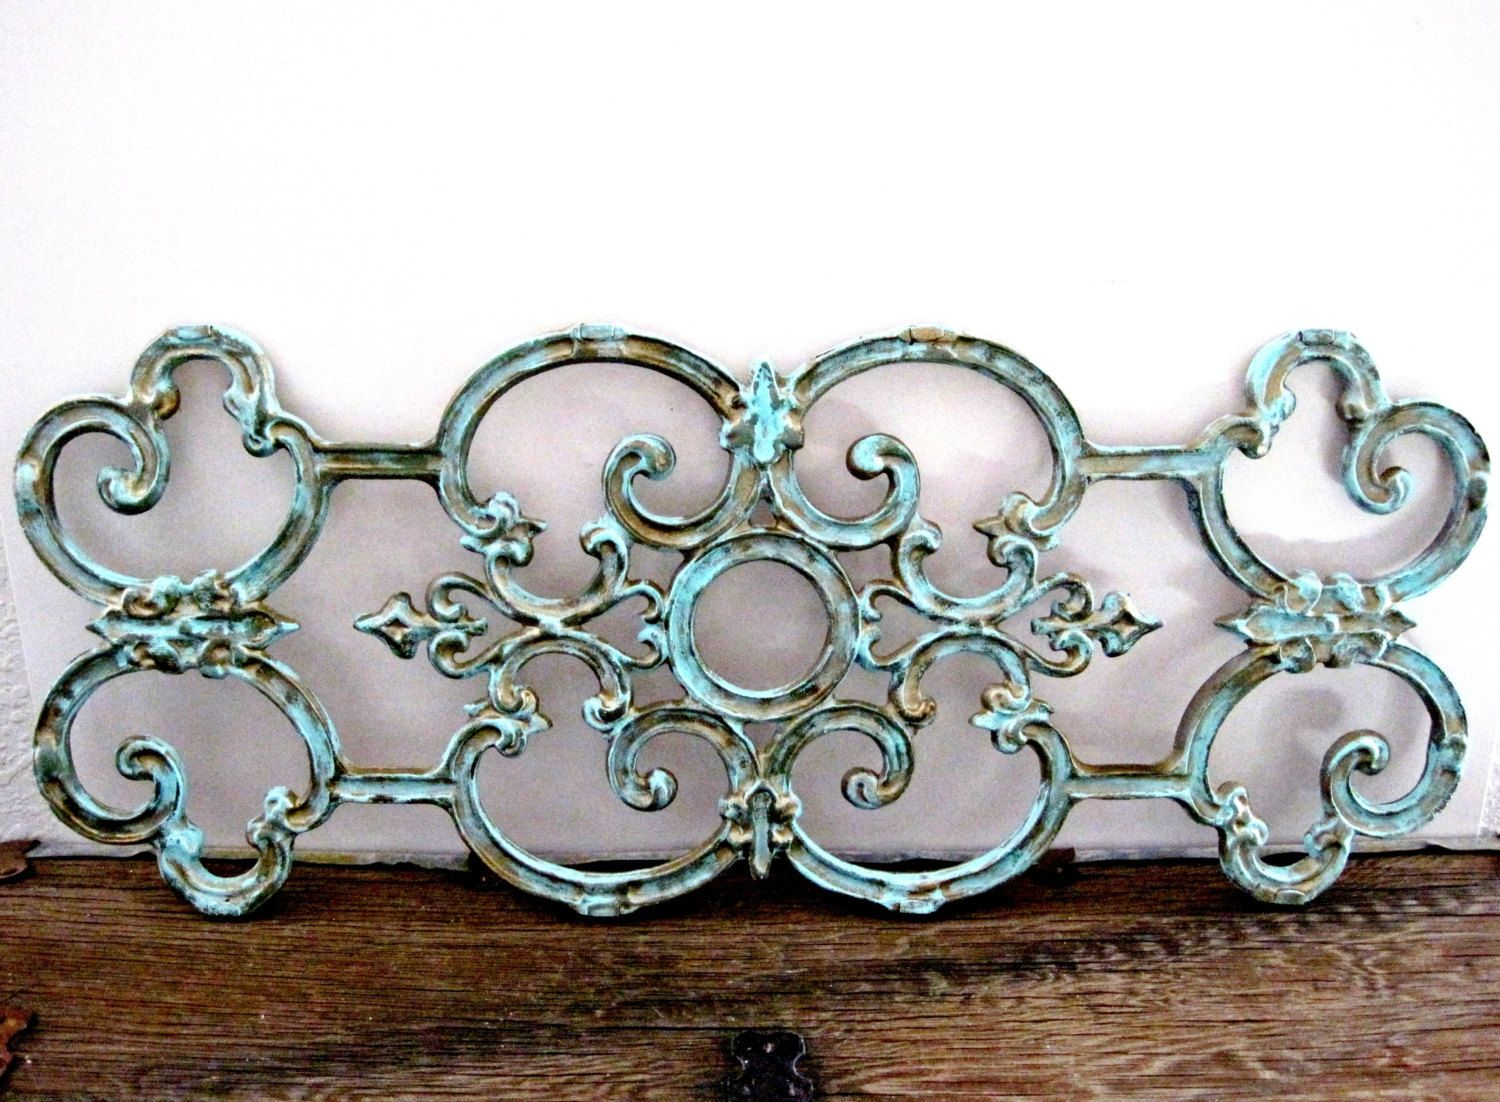 Wrought Iron Large Wall Decor Large Wrought Iron Gate Architectural Salvage Wall Decor  Knick